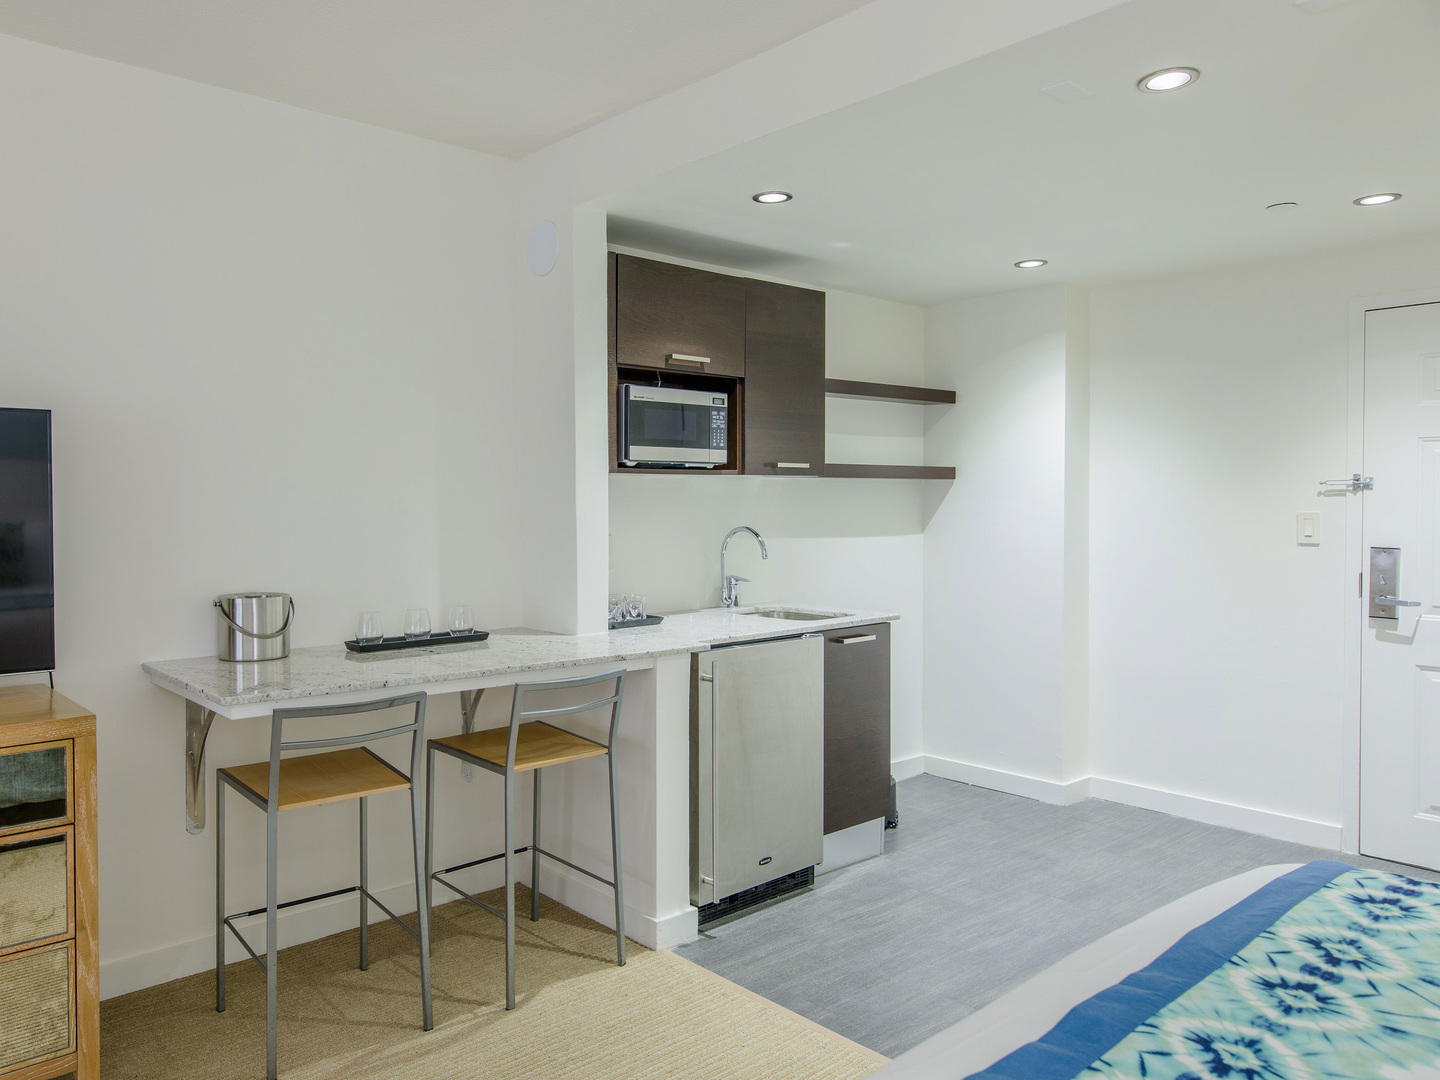 Marriott Vacation Club Pulse<span class='trademark'>®</span>, South Beach Kitchenette. Marriott Vacation Club Pulse<span class='trademark'>®</span>, South Beach is located in Miami Beach, Florida United States.